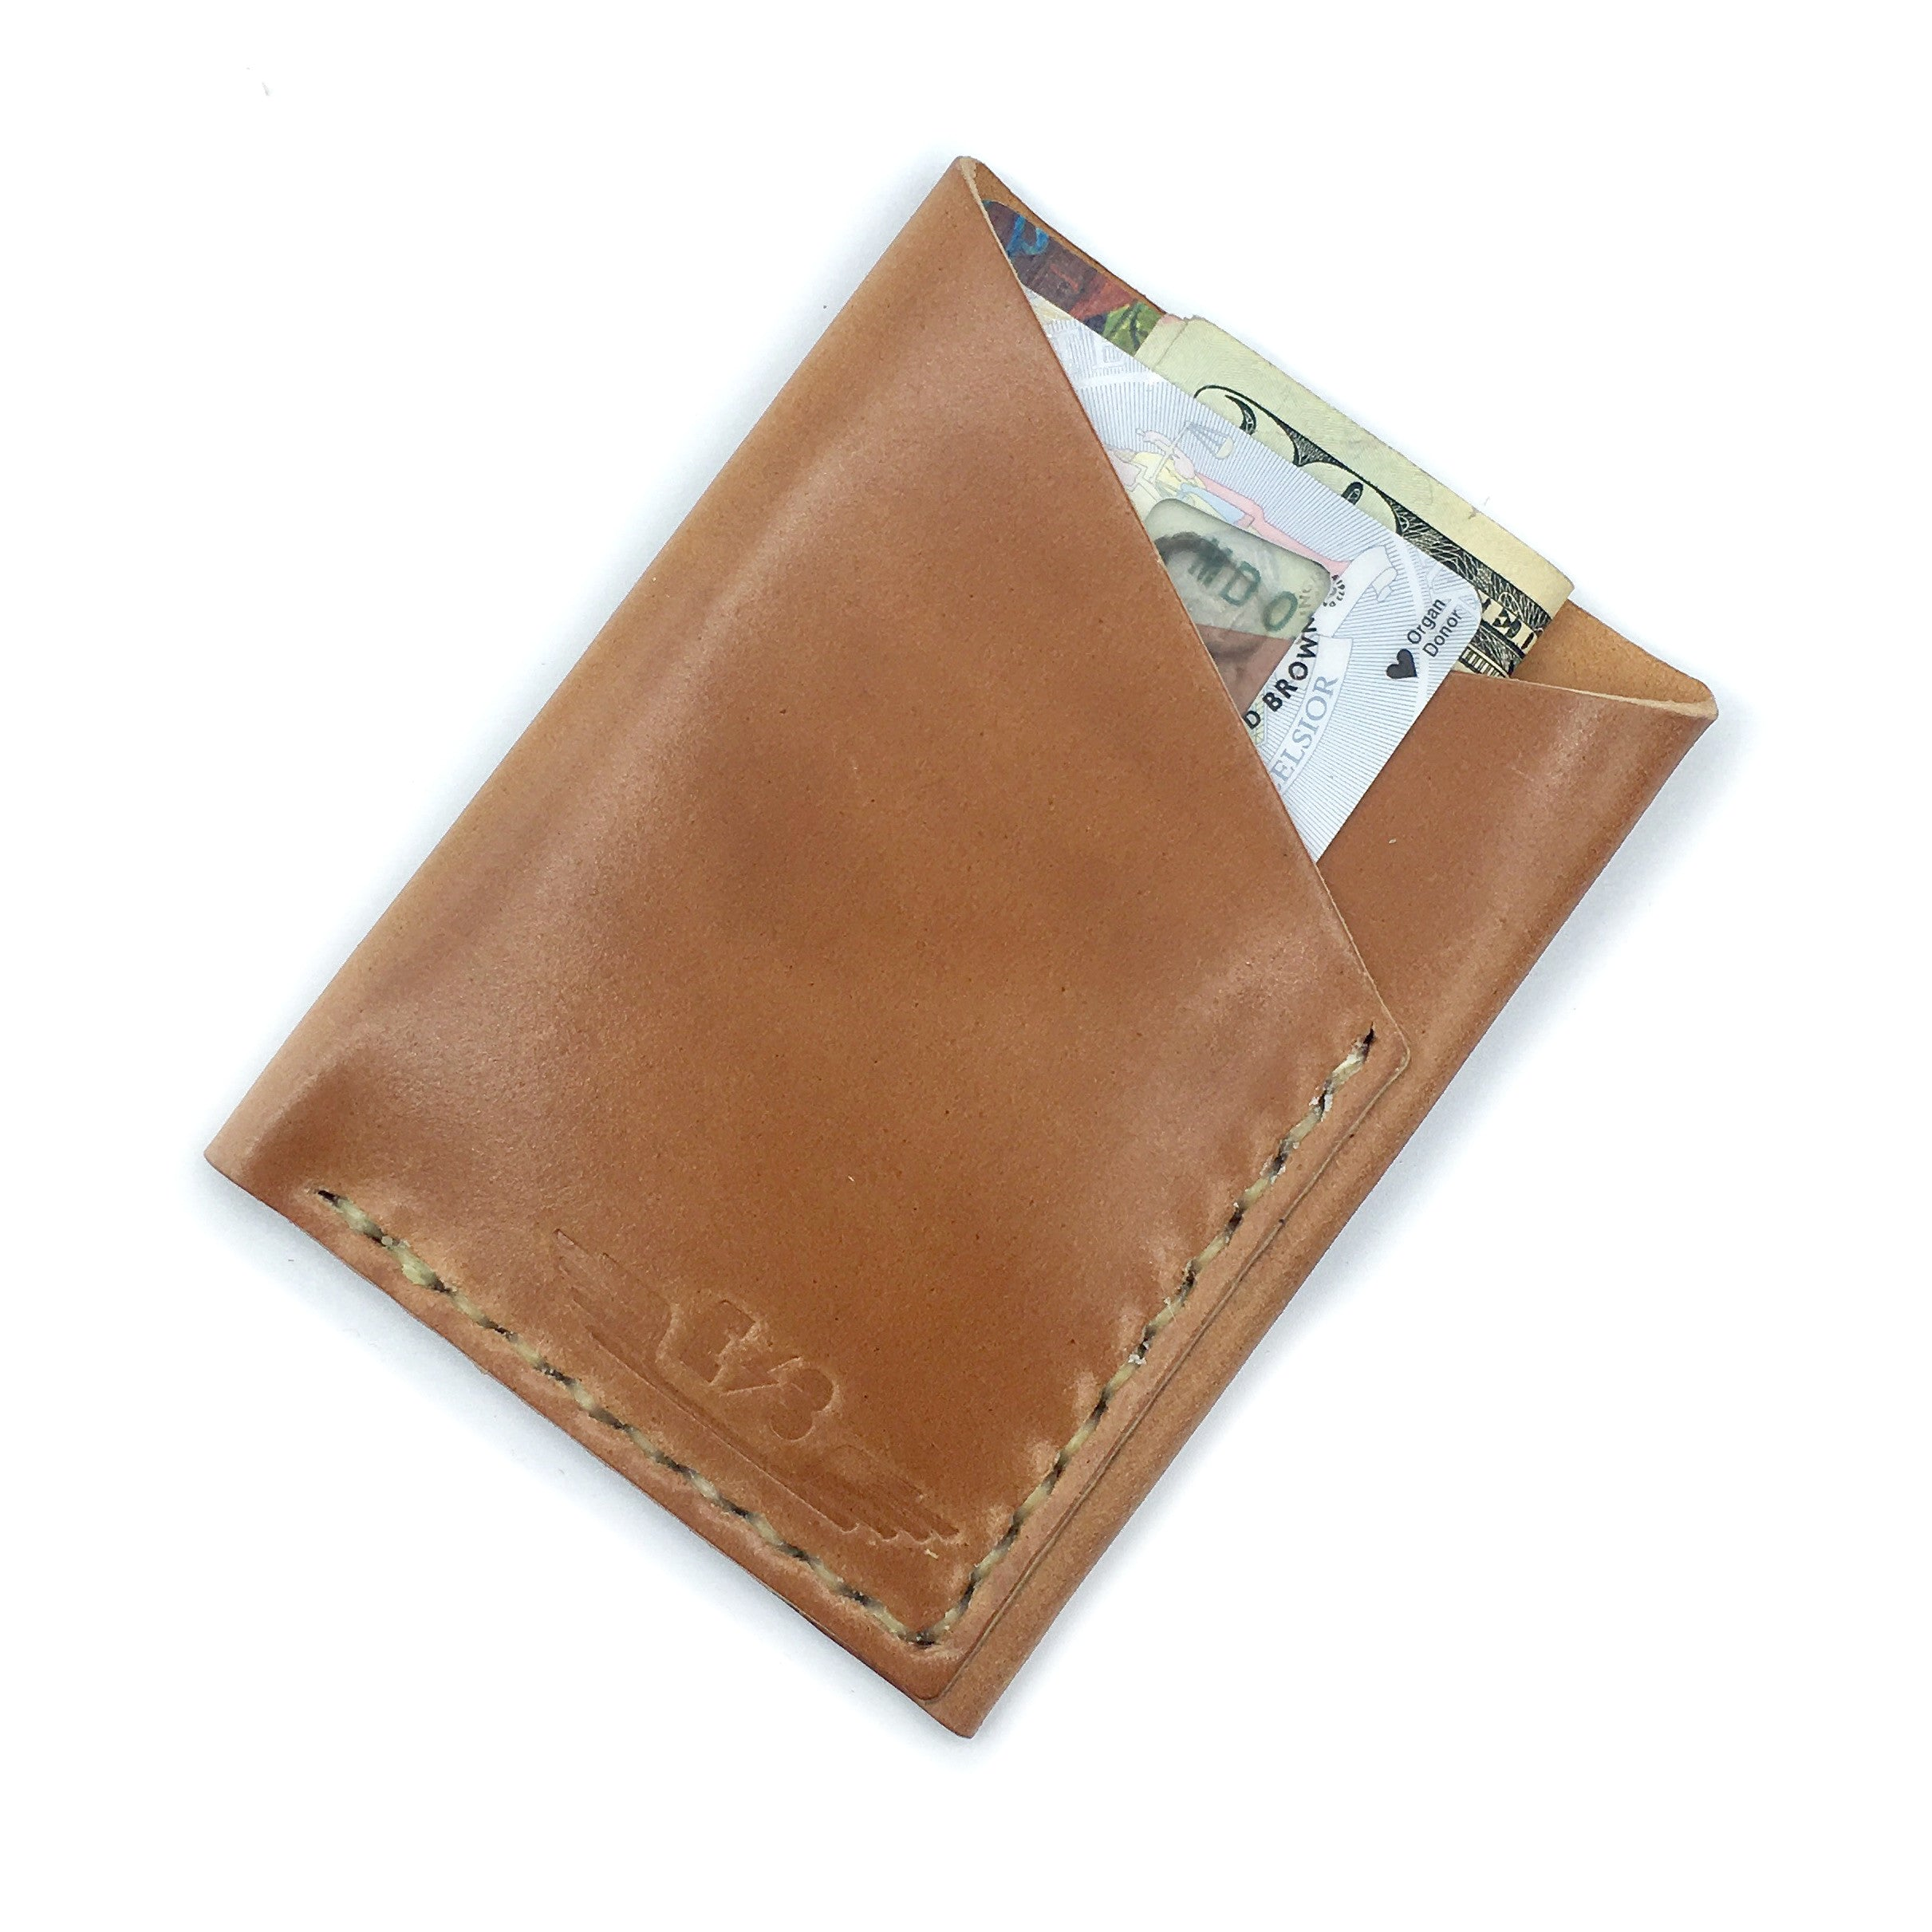 Shell Cordovan Wallet by E3 Supply Co: Clayton UK Whiskey